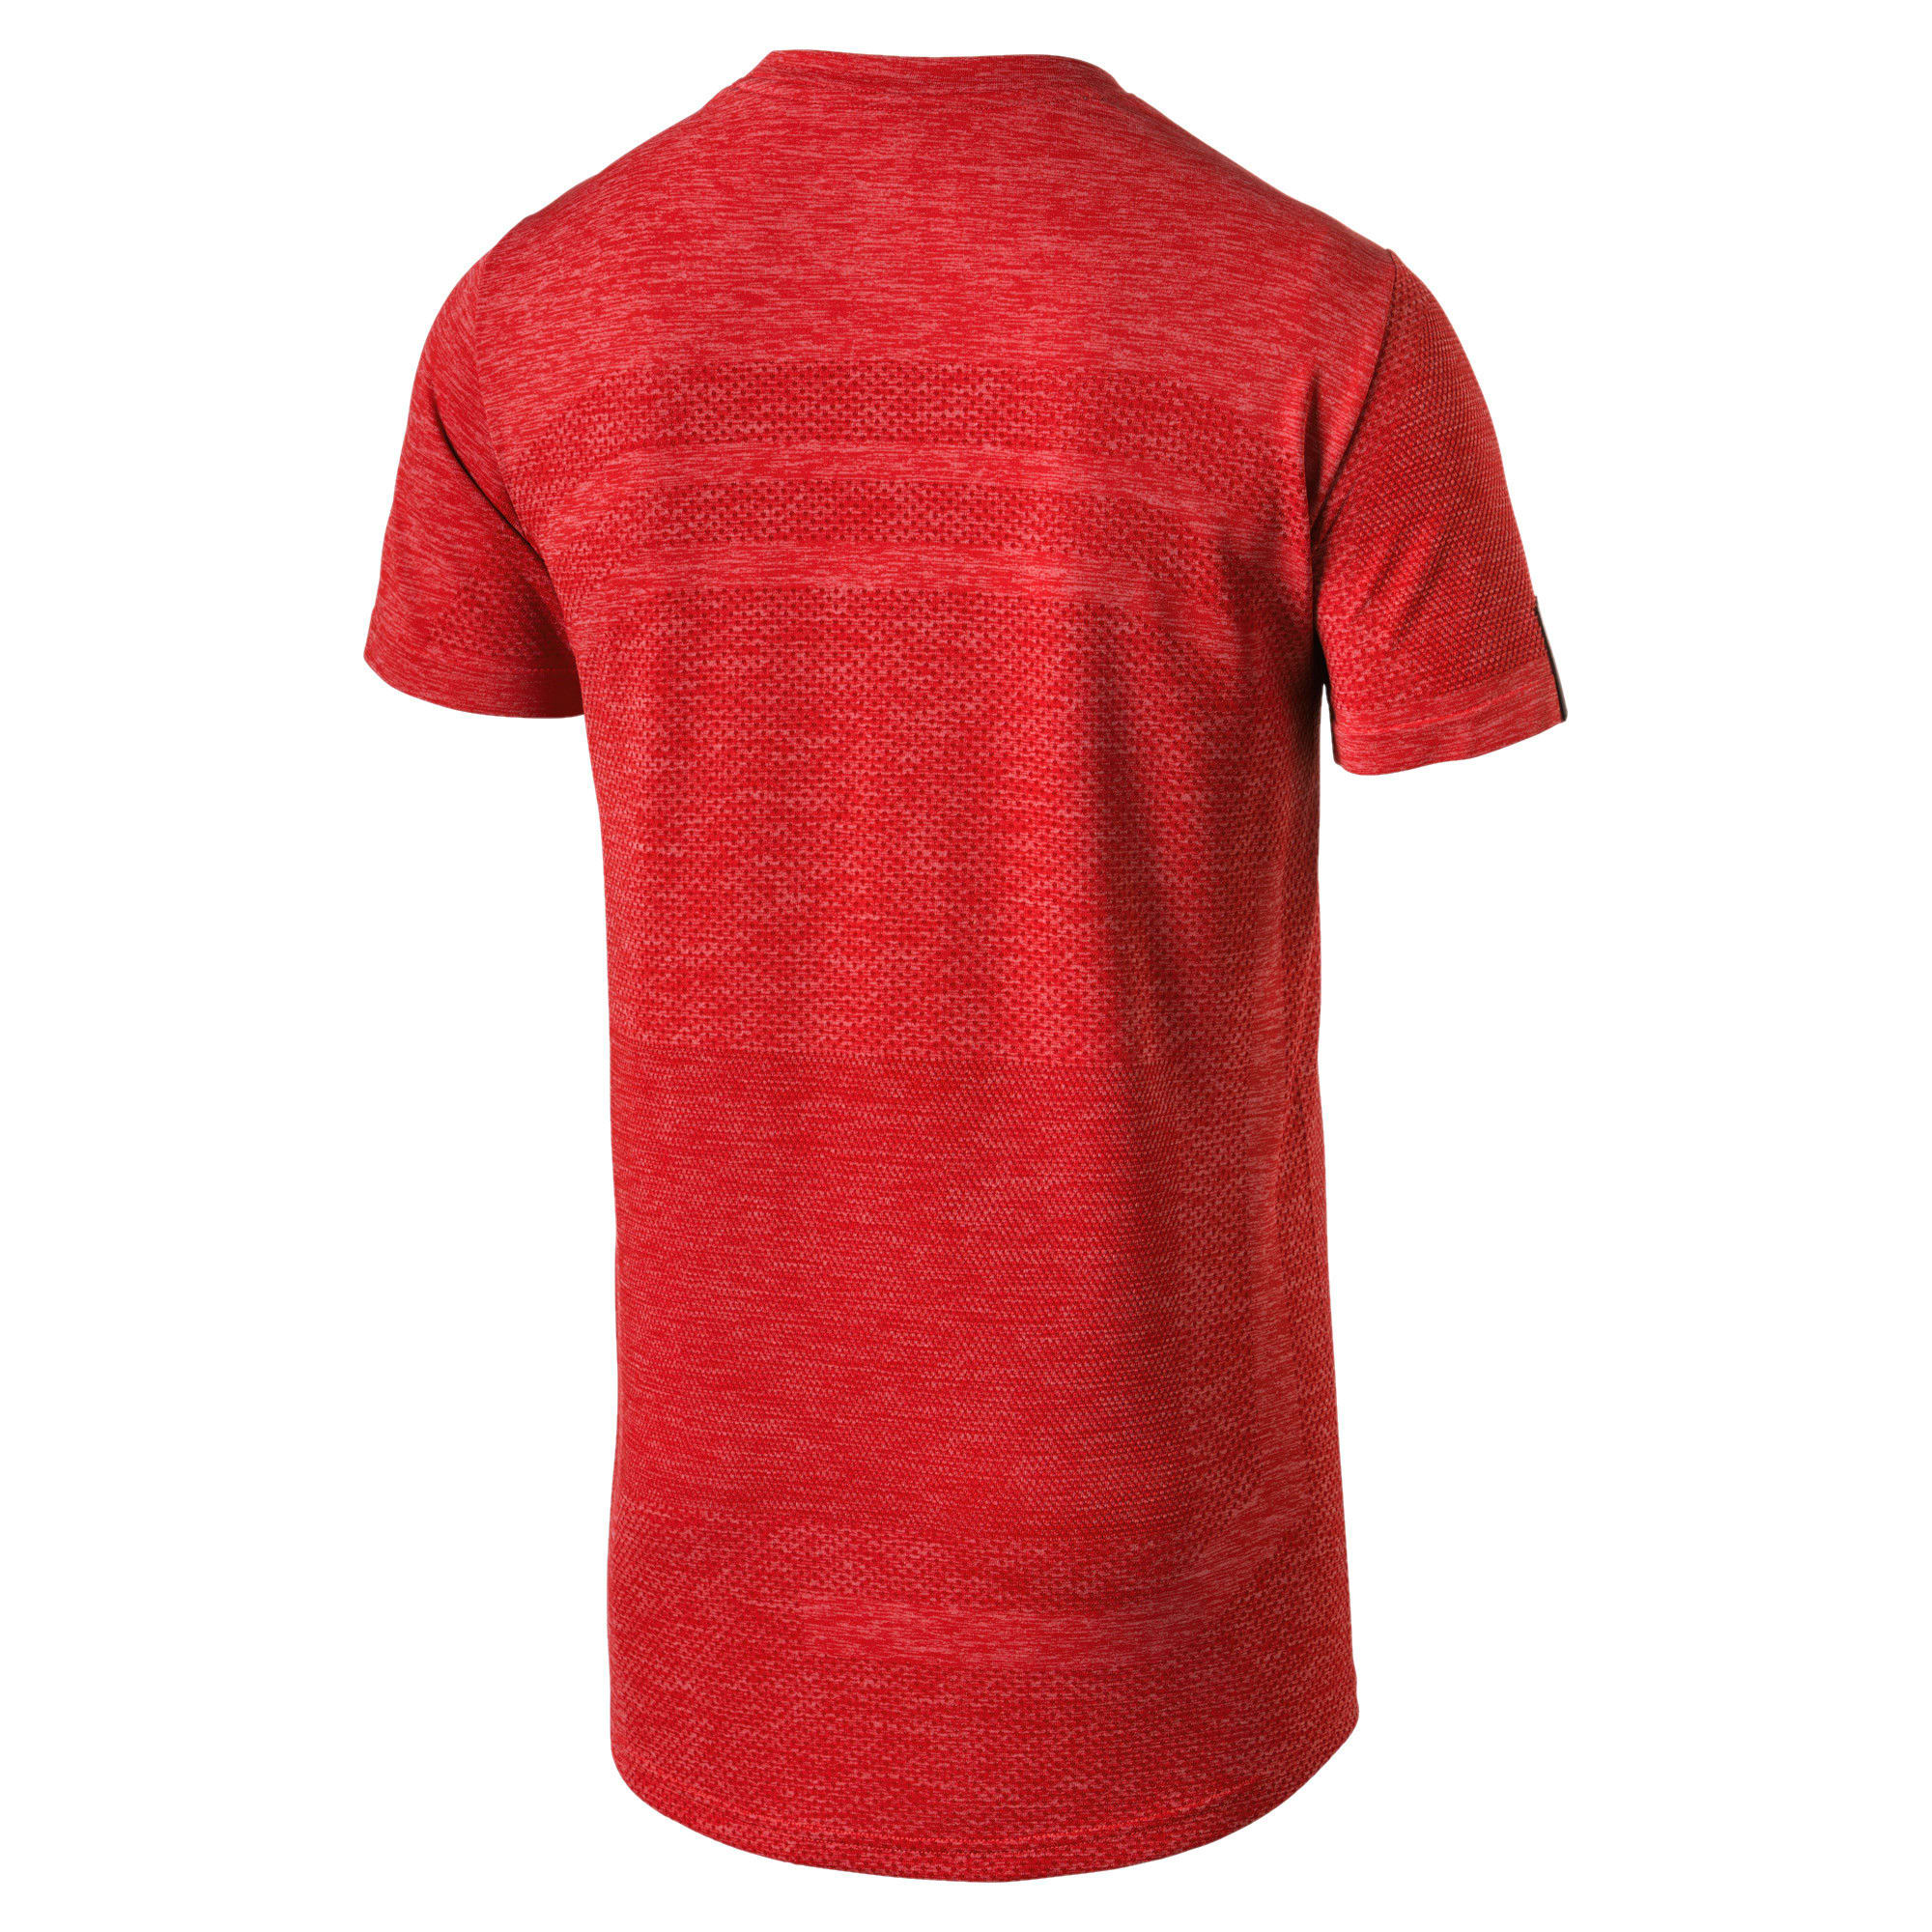 Thumbnail 3 of Ferrari evoKNIT Short Sleeve Men's Tee, Rosso Corsa, medium-IND